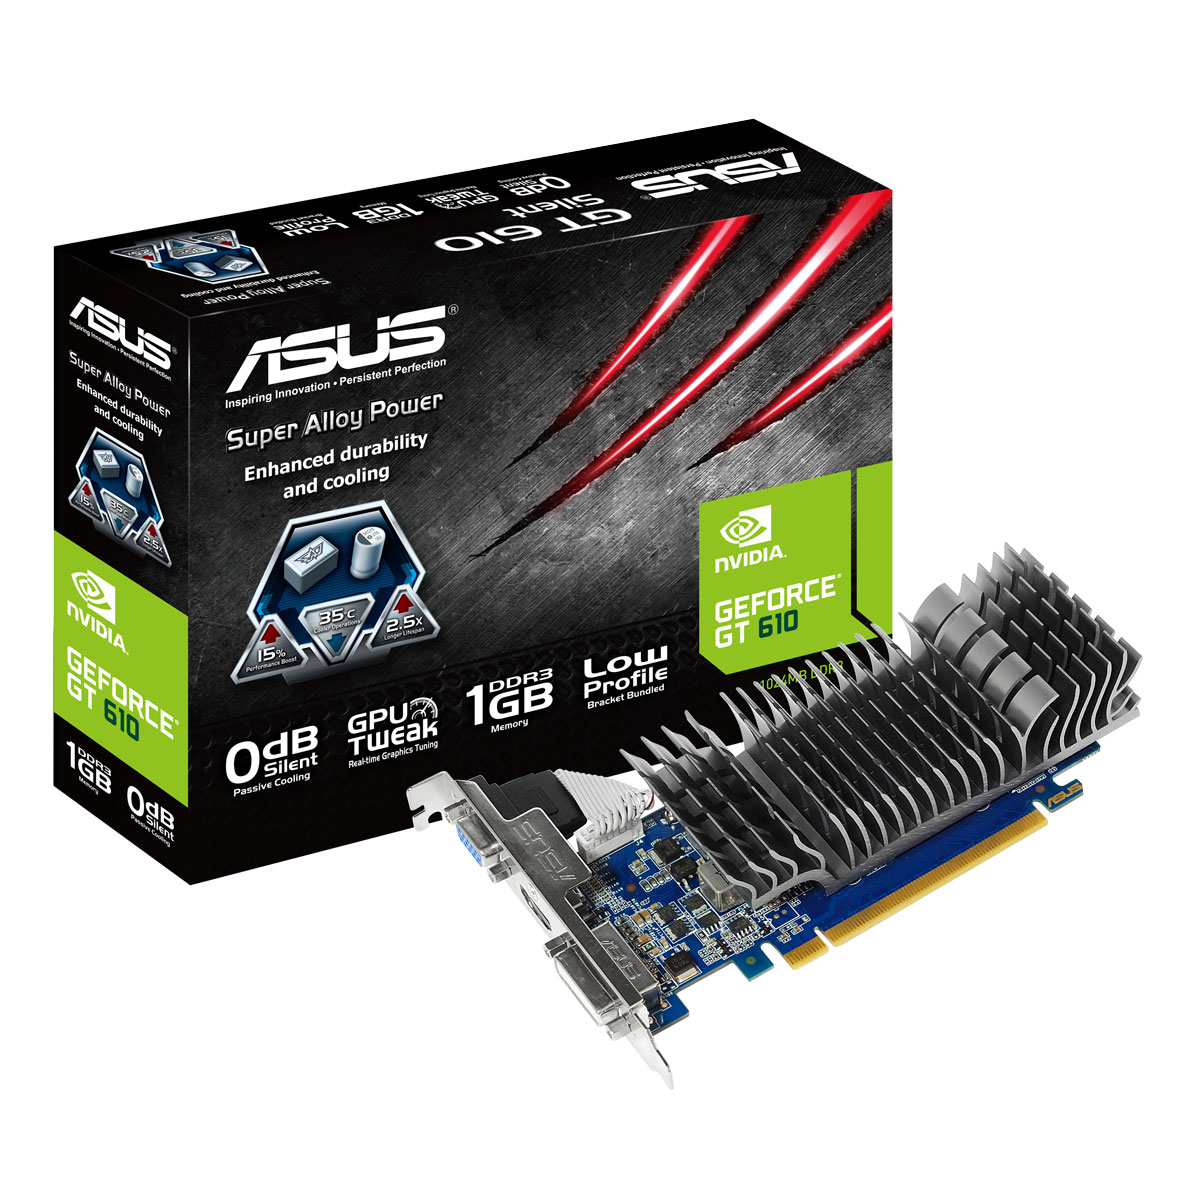 asus geforce gt 610 low profile 1 gb carte graphique asus sur. Black Bedroom Furniture Sets. Home Design Ideas